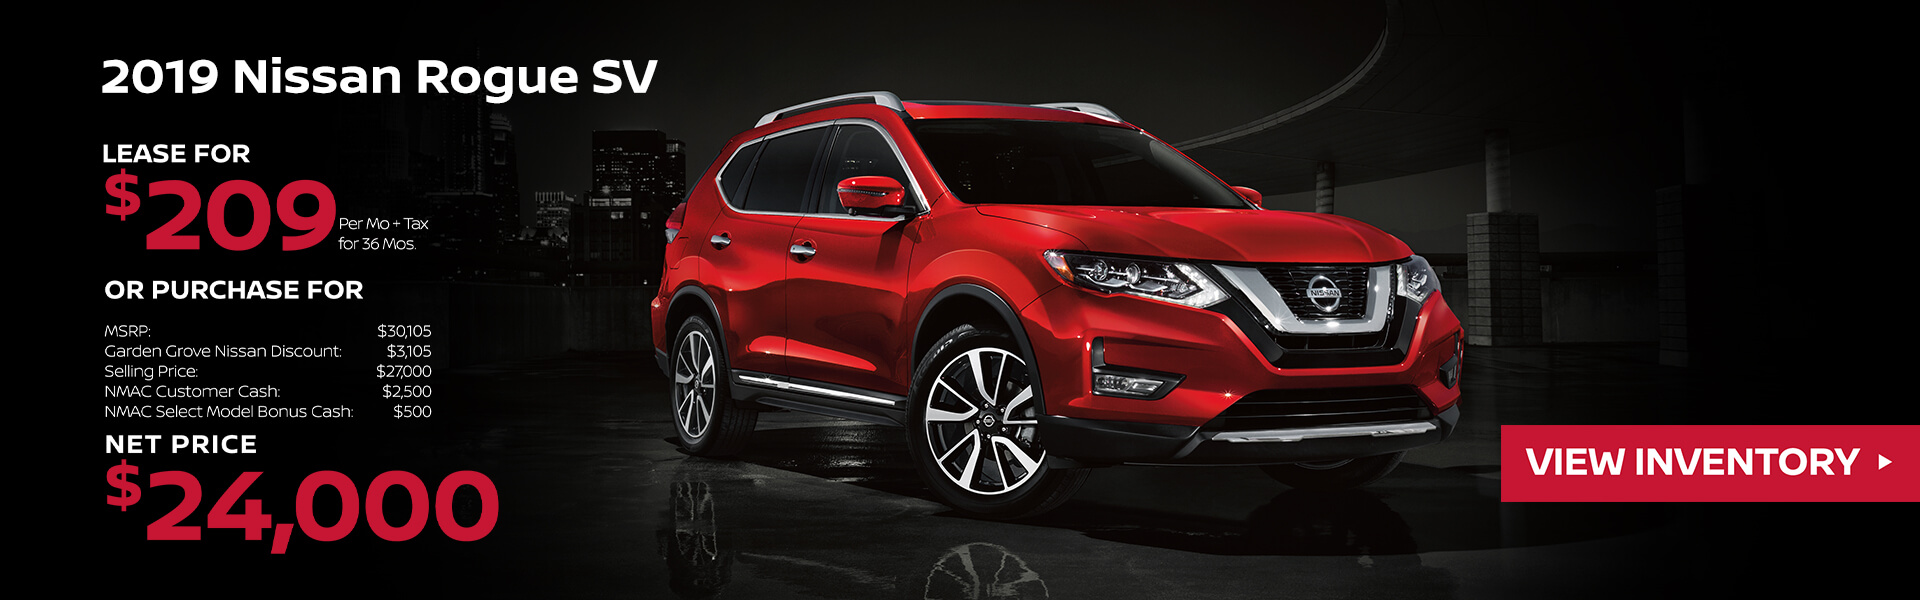 2019 Nissan Rogue Lease for $209